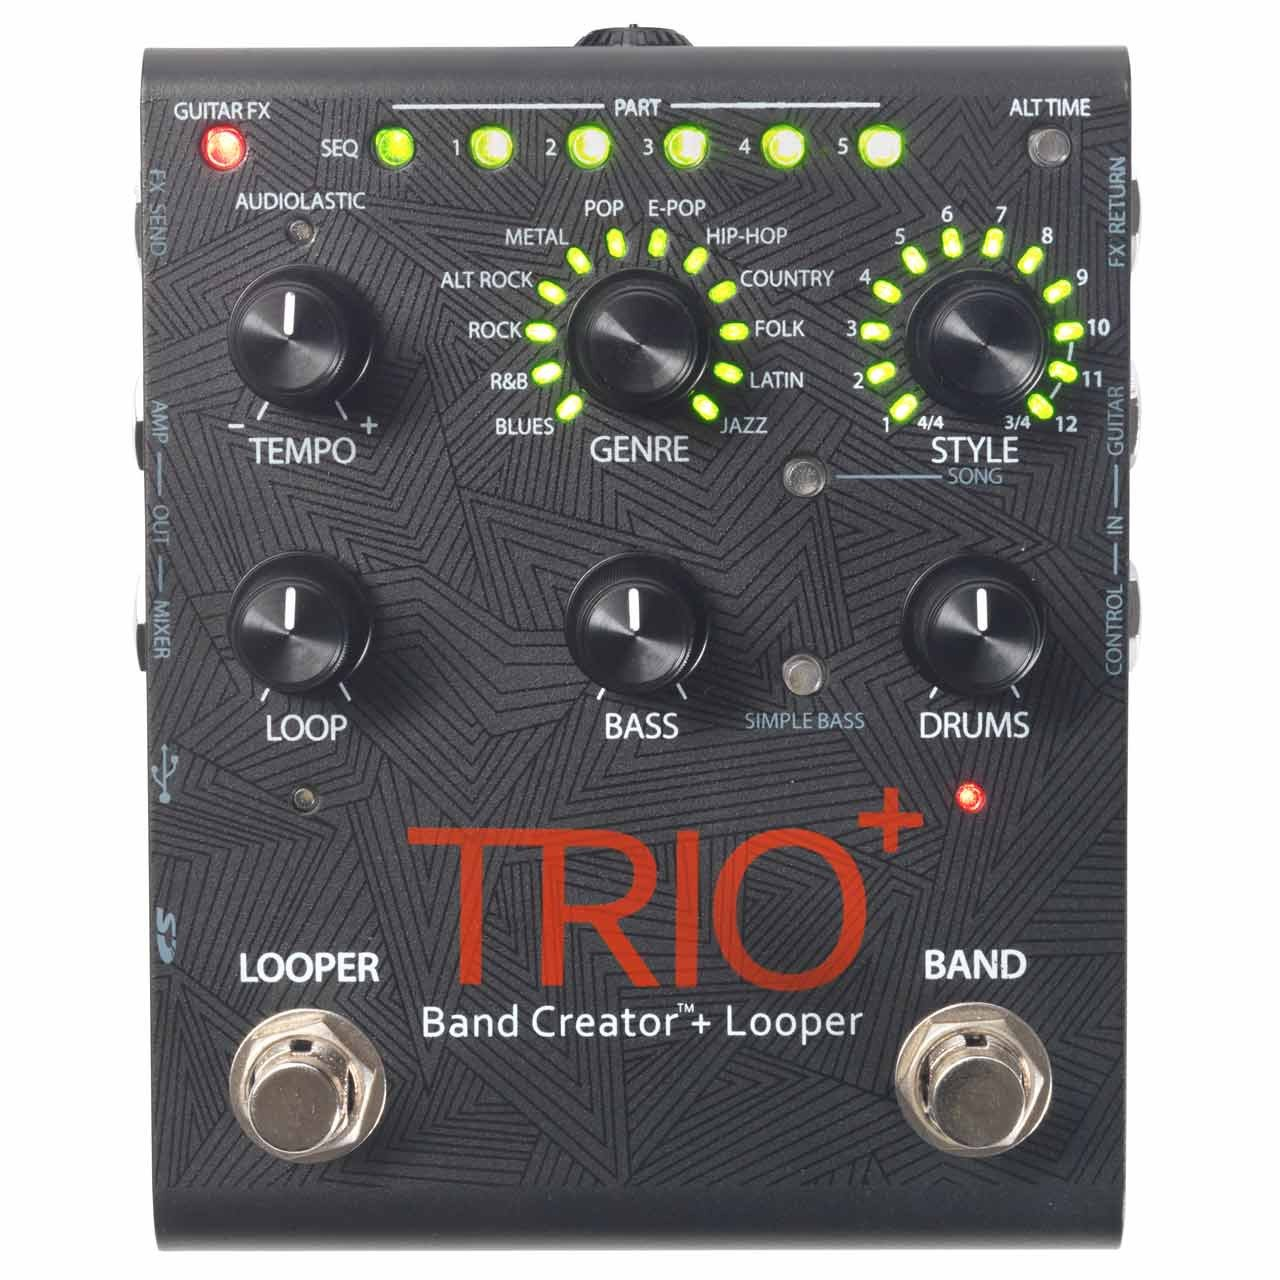 Pedals & Effects - Digitech TRIO+ Band Creator + Looper